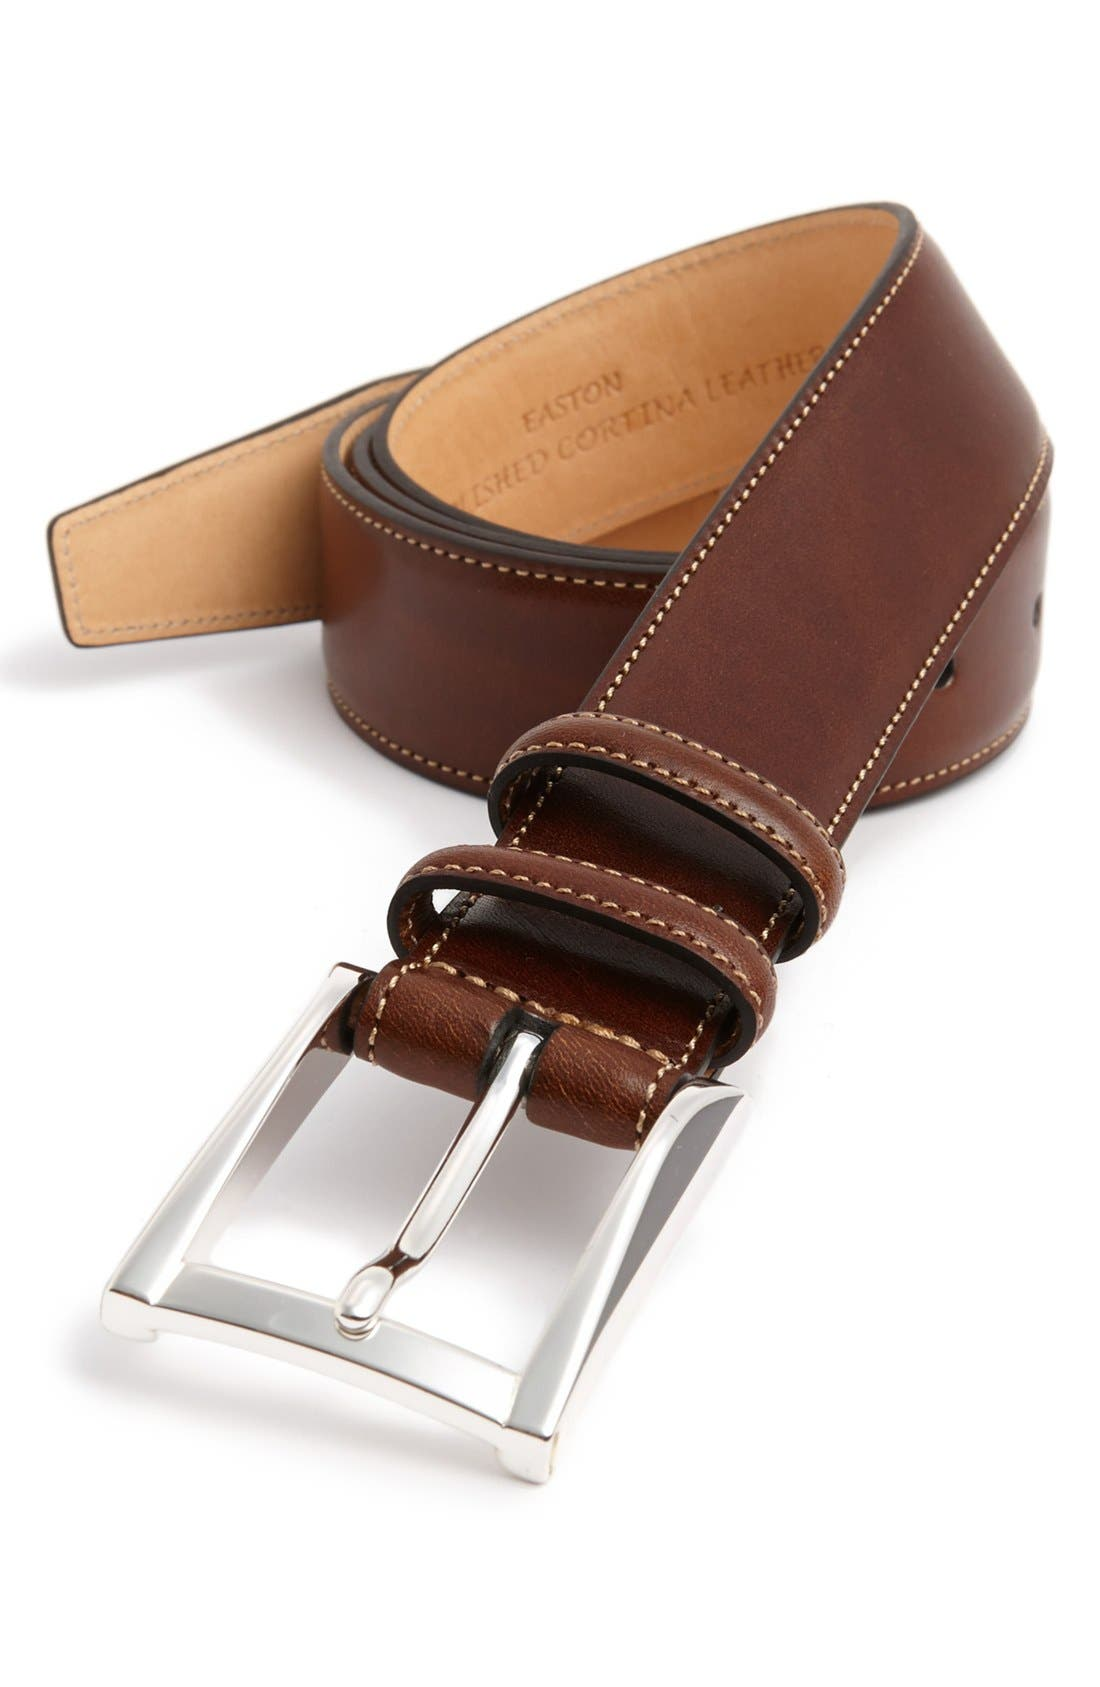 Trafalgar 'Easton' Calfskin Belt